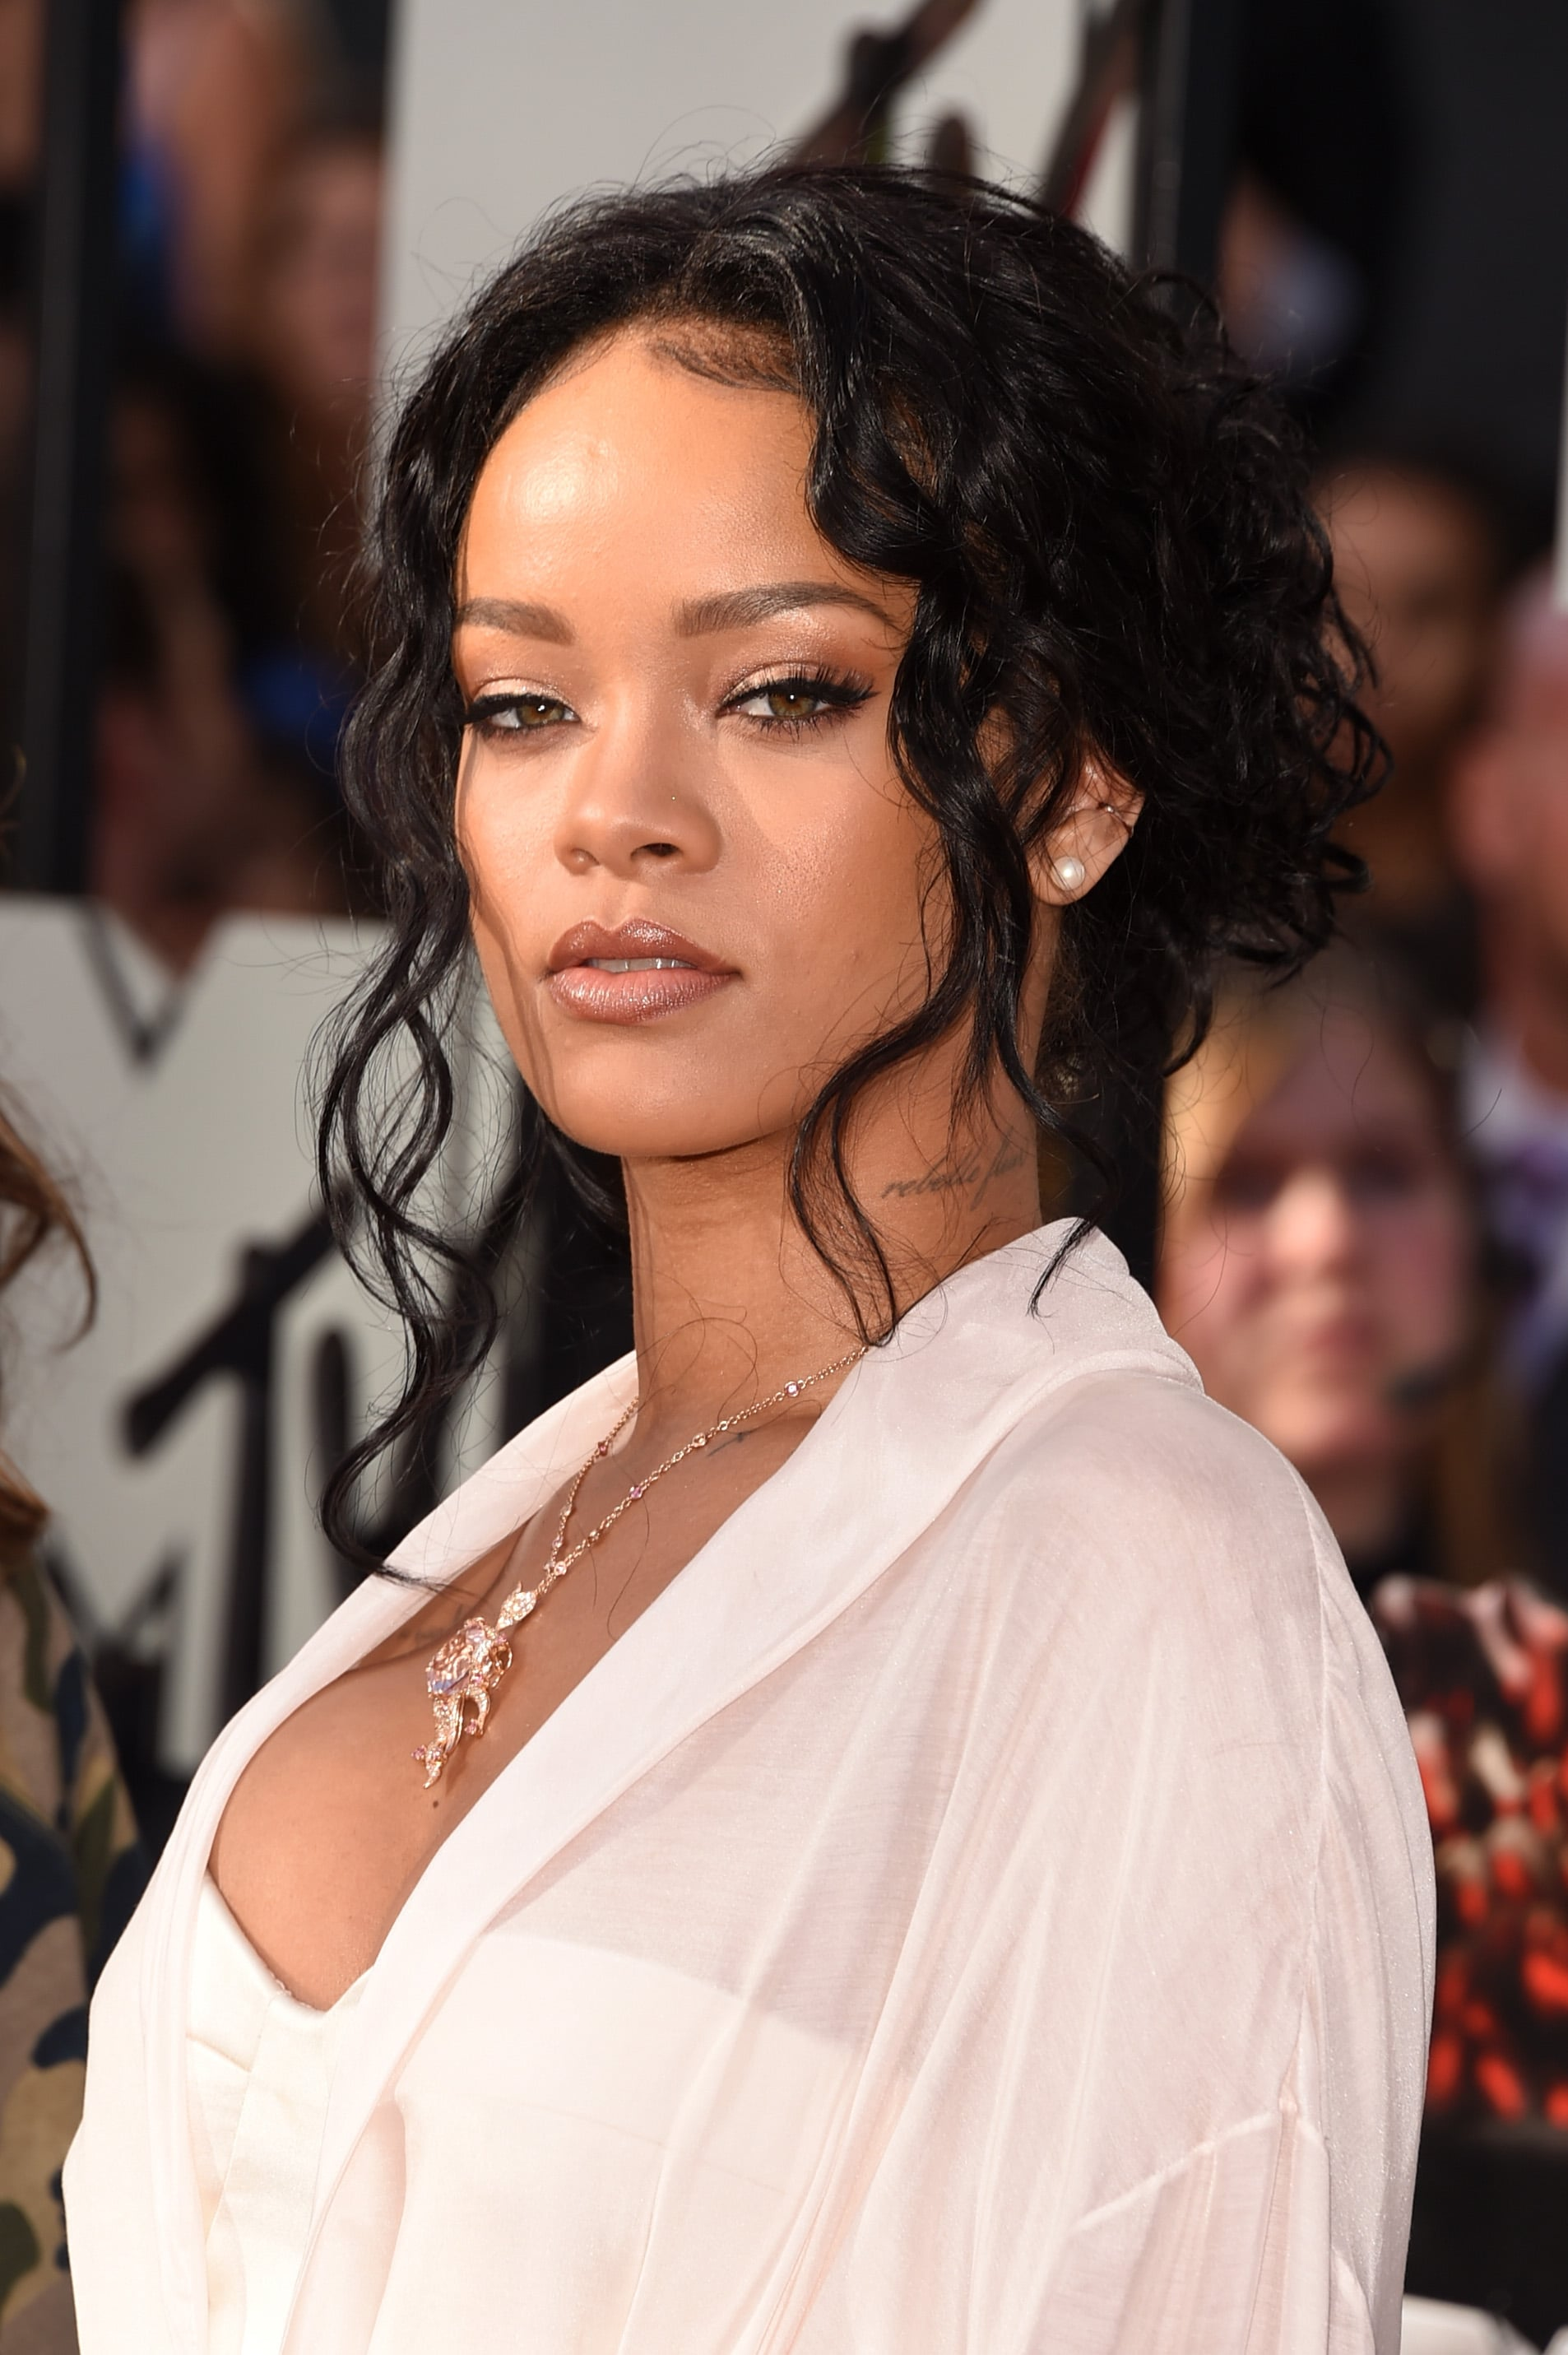 Rihannas Hair And Makeup At Mtv Movie Awards 2014 Popsugar Beauty